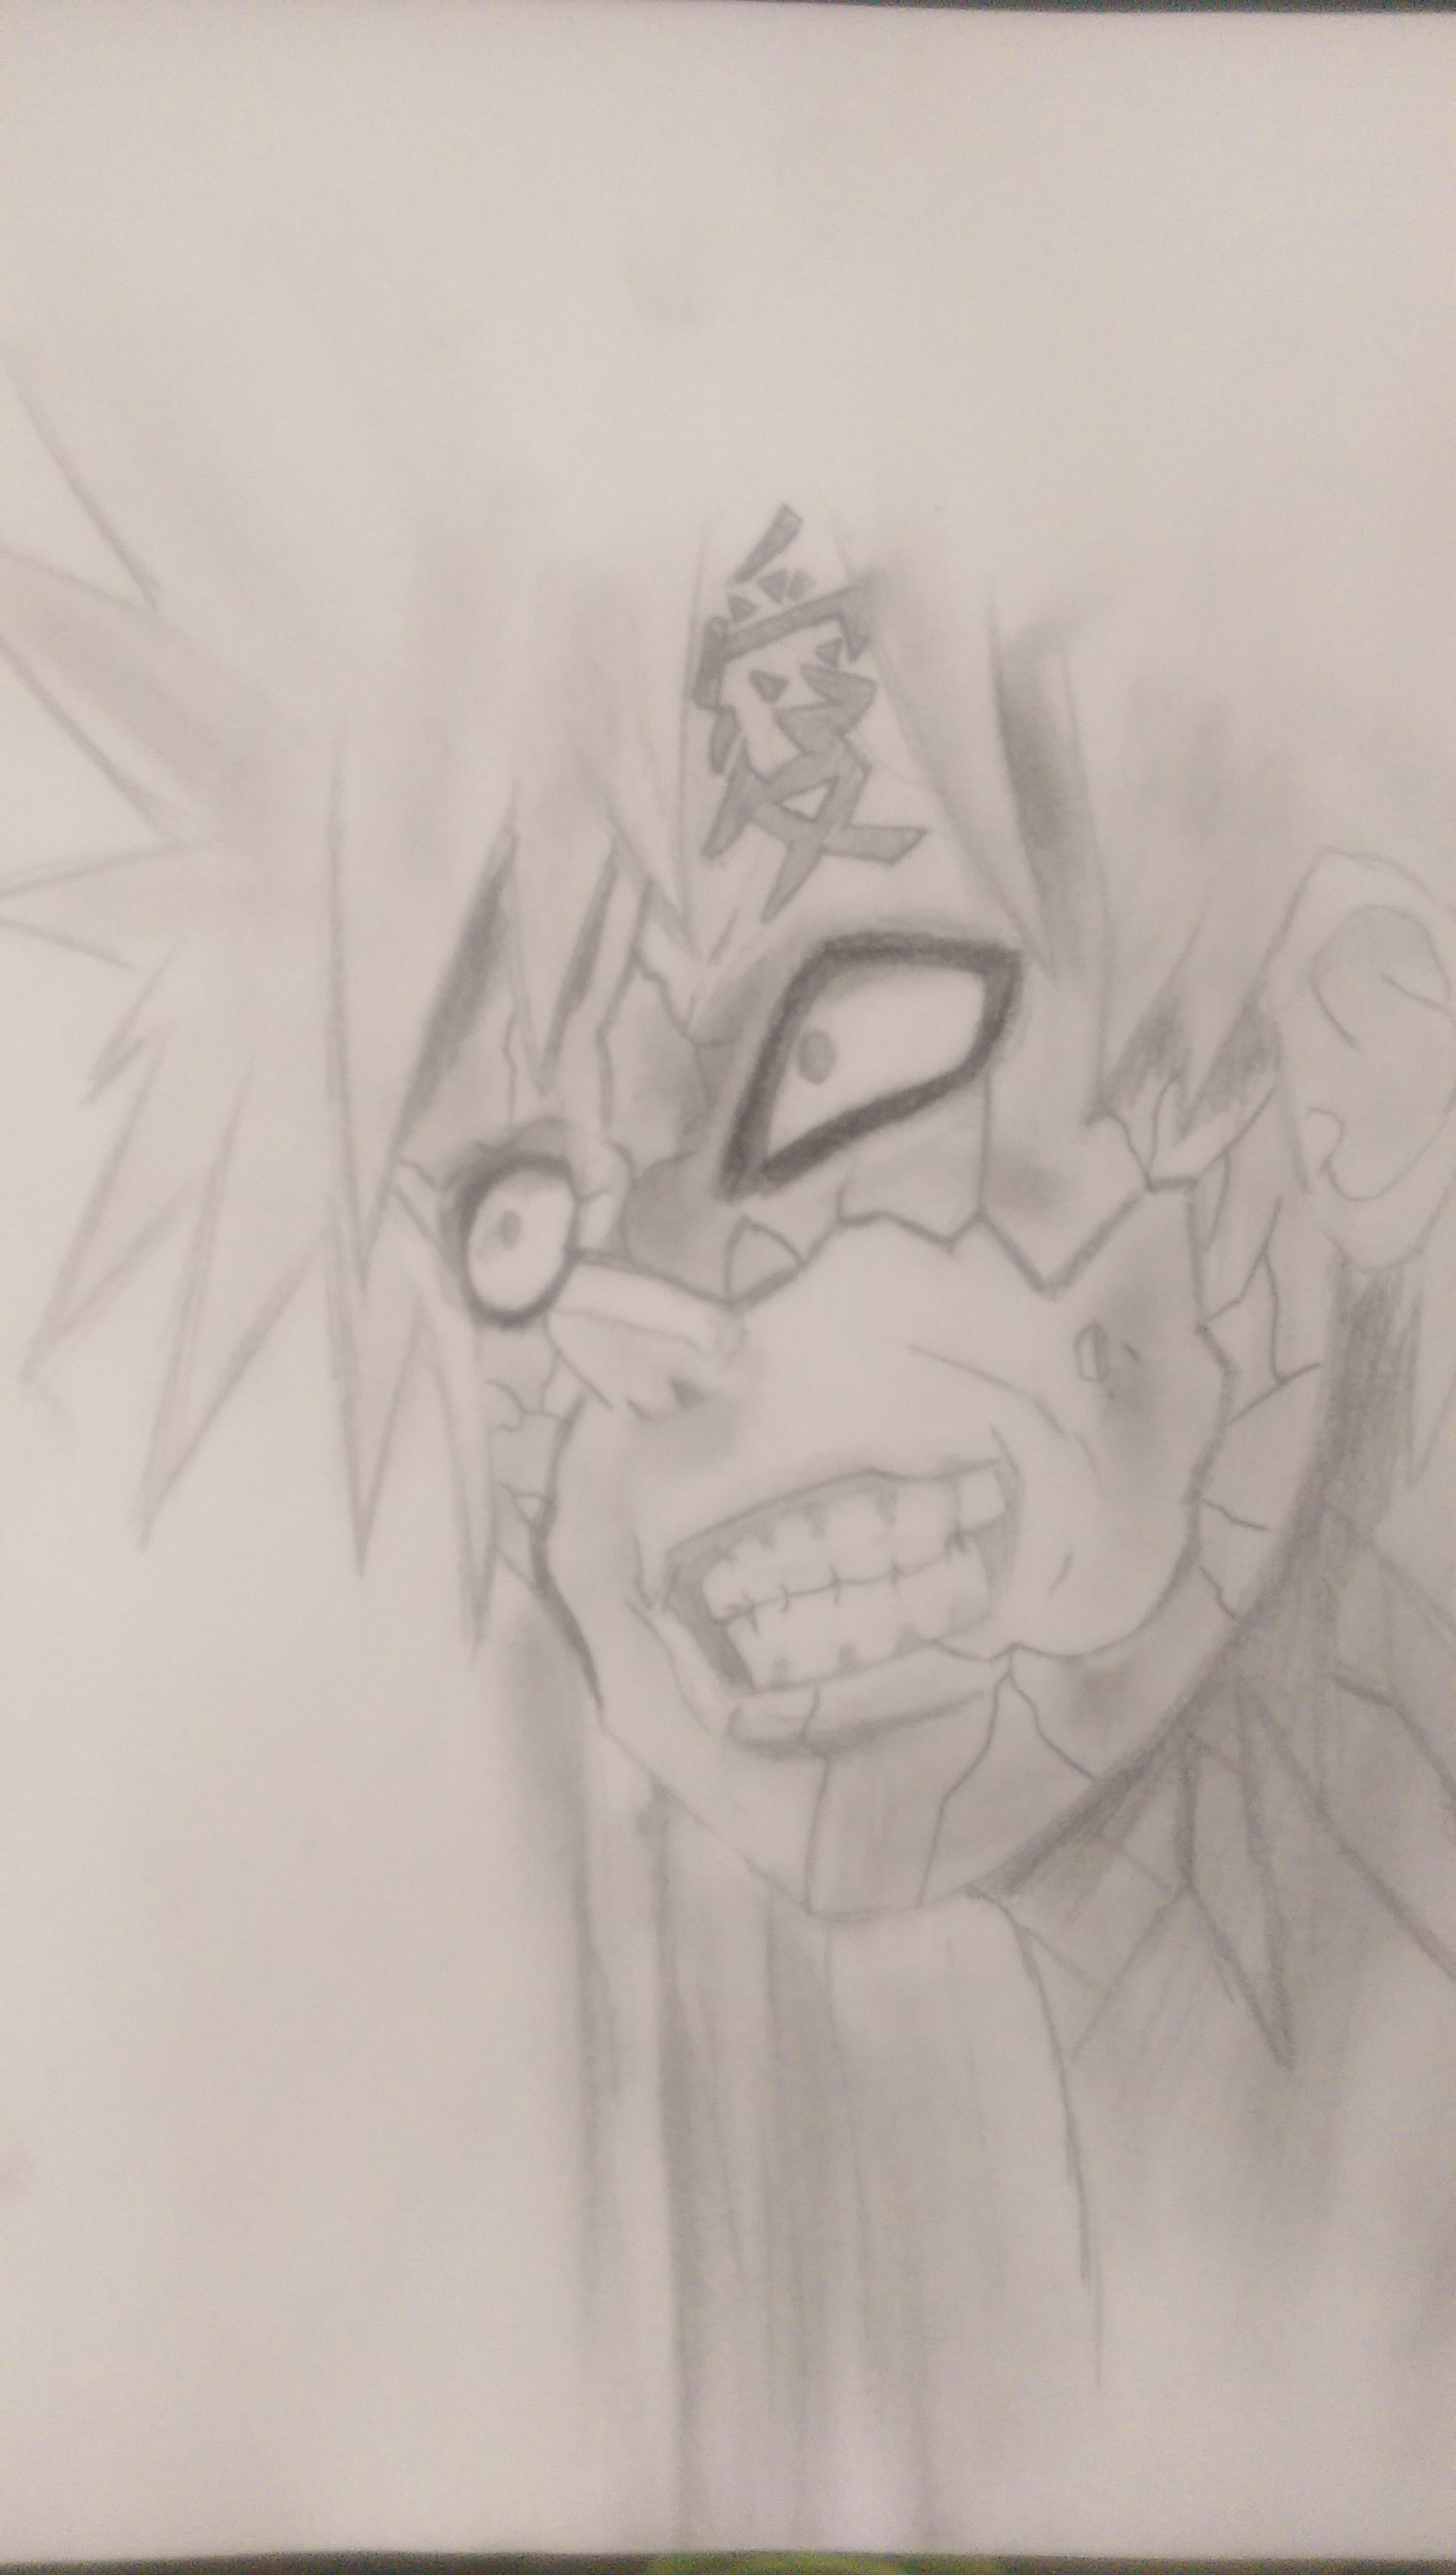 I used to be a Naruto fan